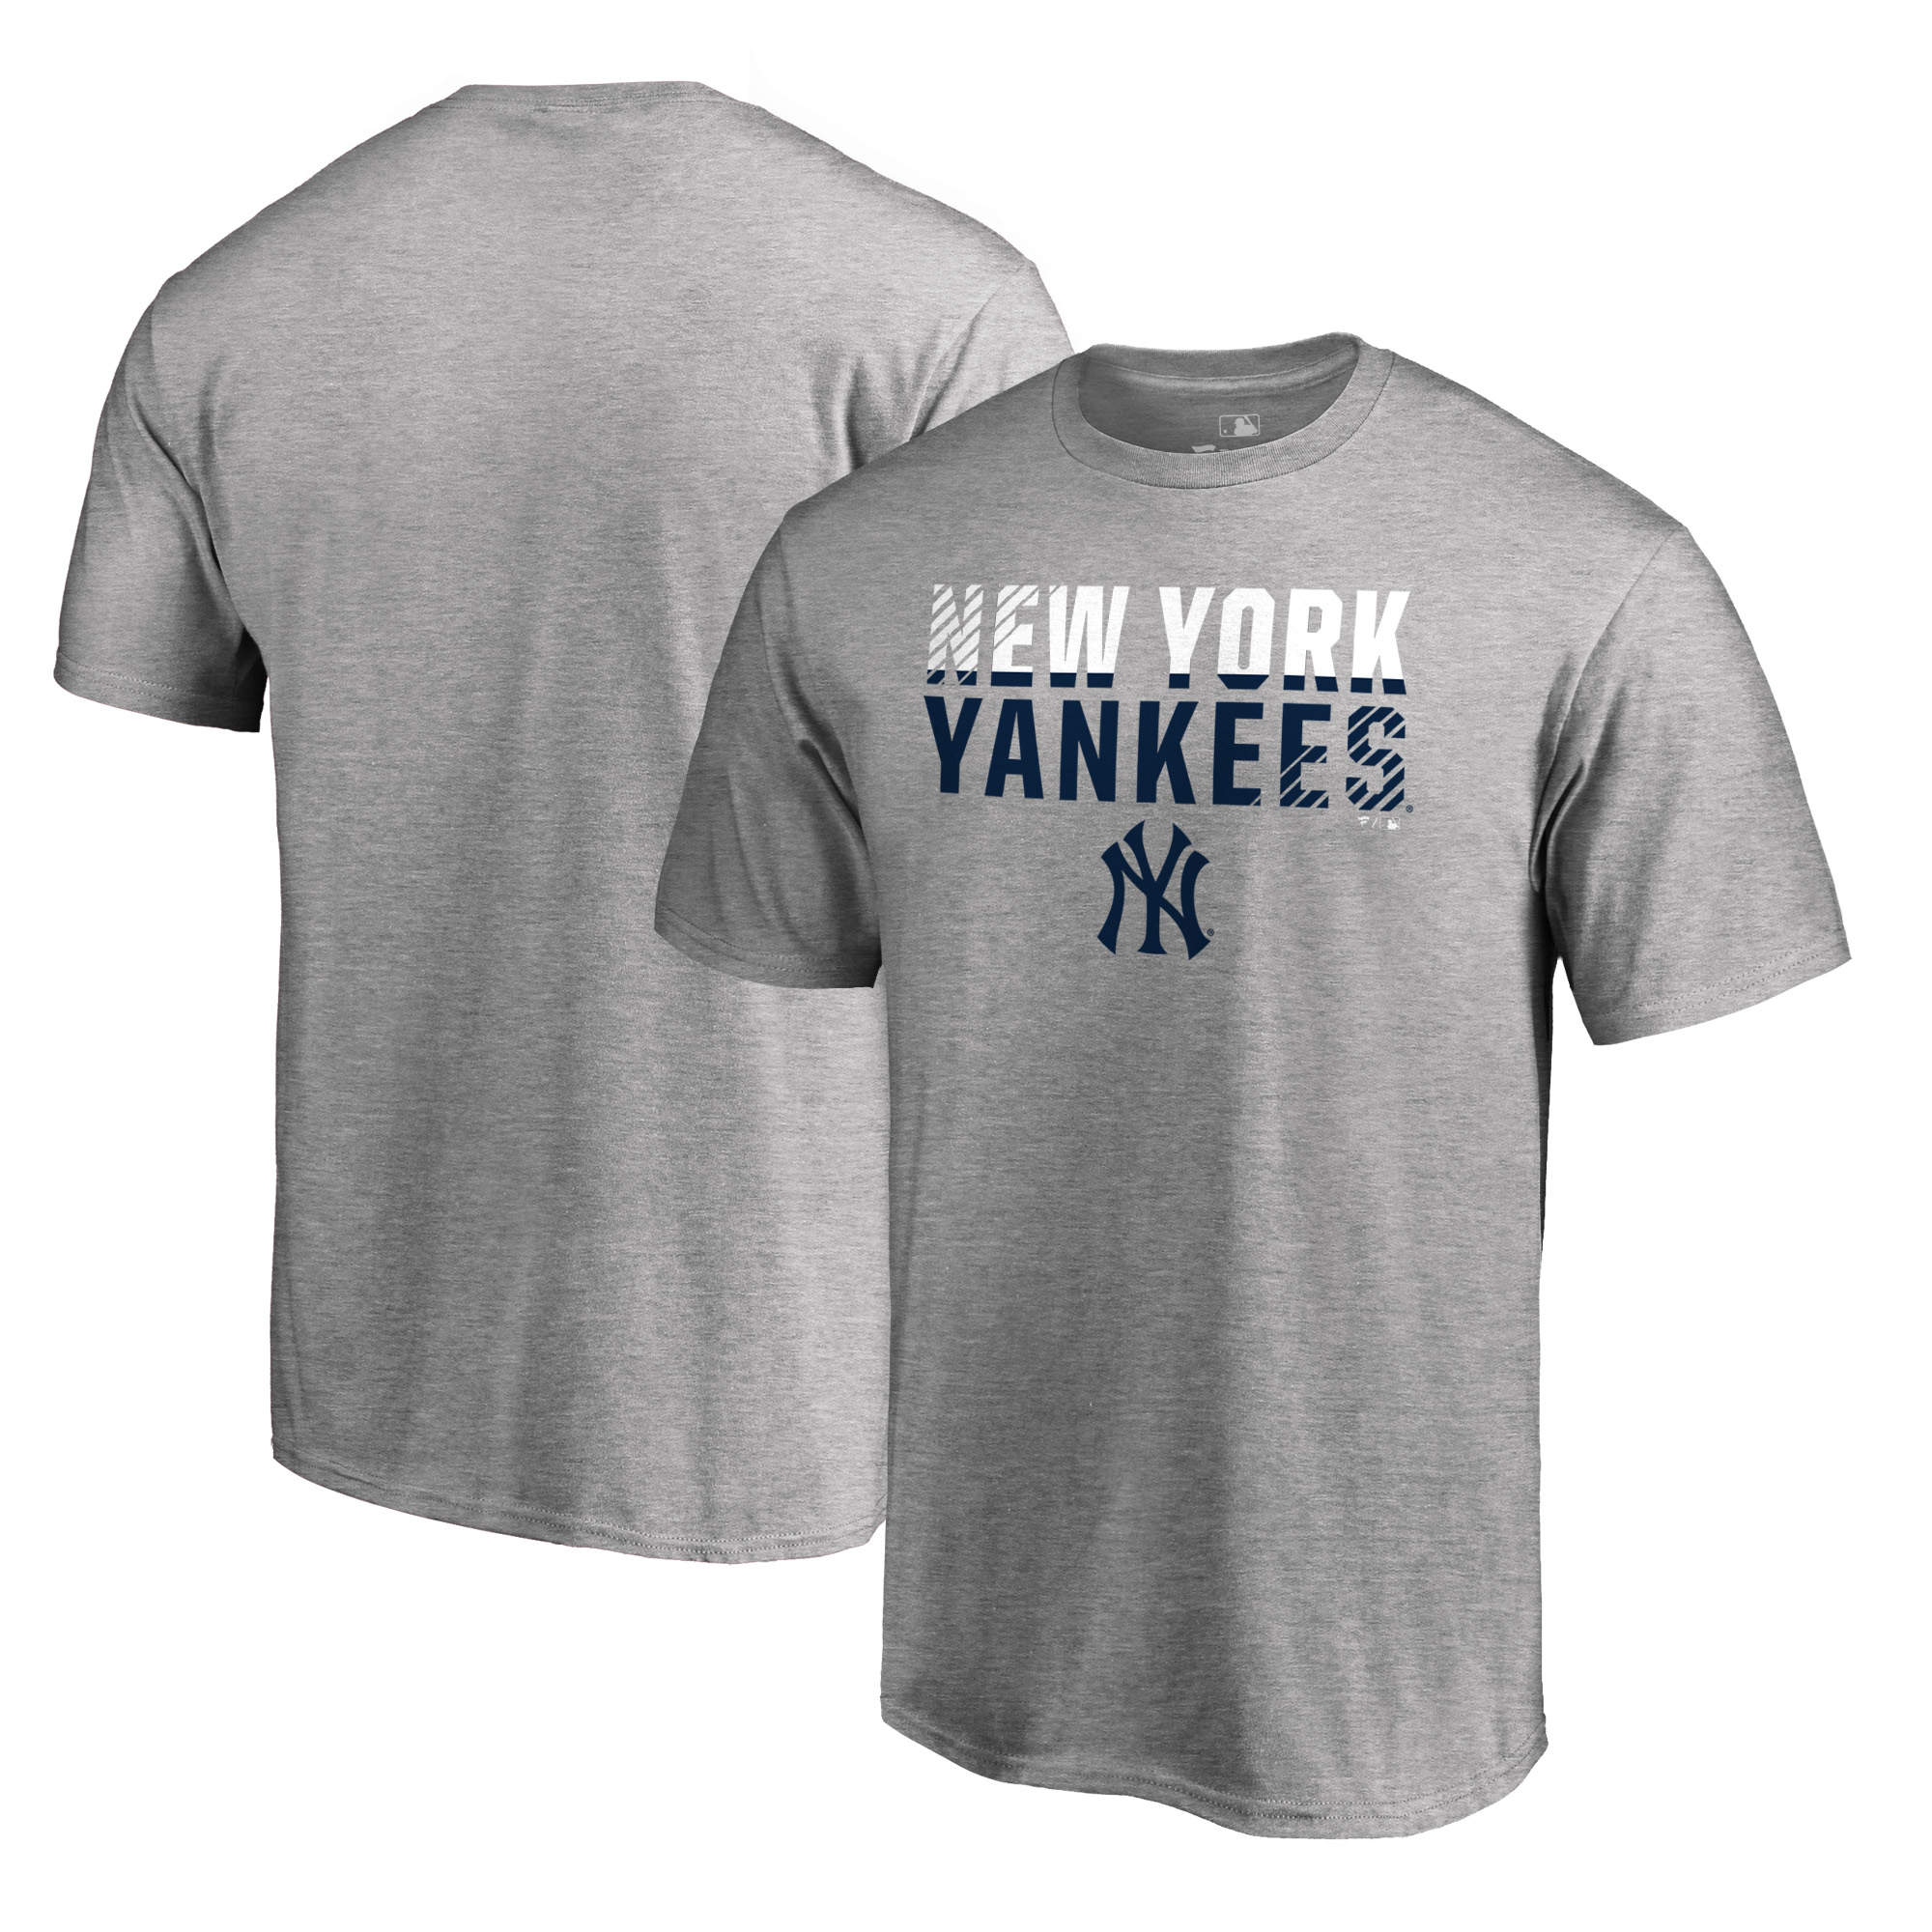 New York Yankees Fanatics Branded Team Fade Out T-Shirt - Heathered Gray